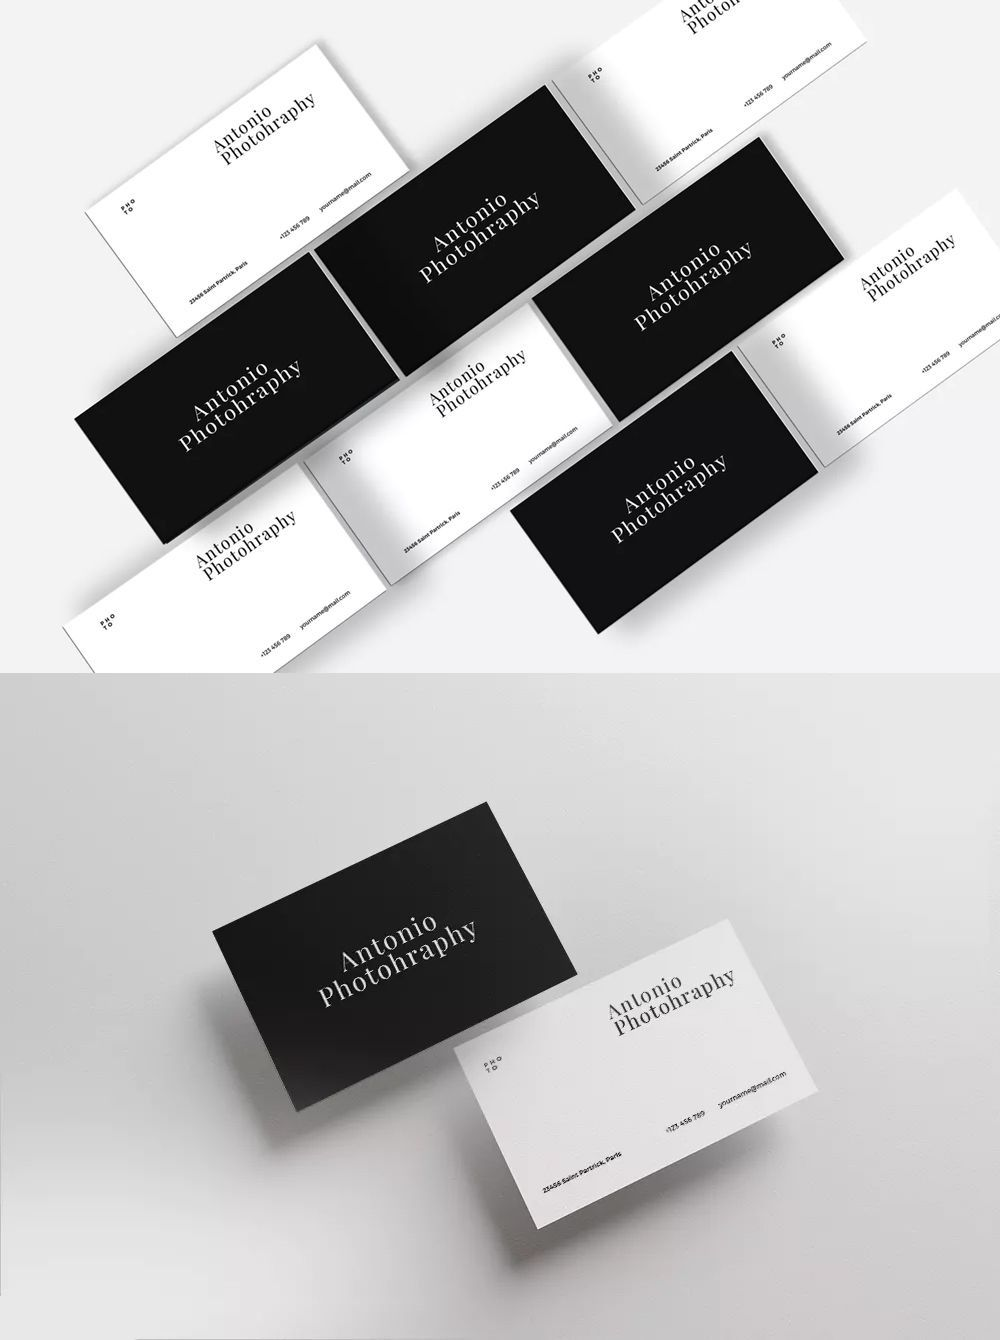 002 Exceptional Minimal Busines Card Template Psd Photo  Simple Visiting Design In Photoshop File Free DownloadFull